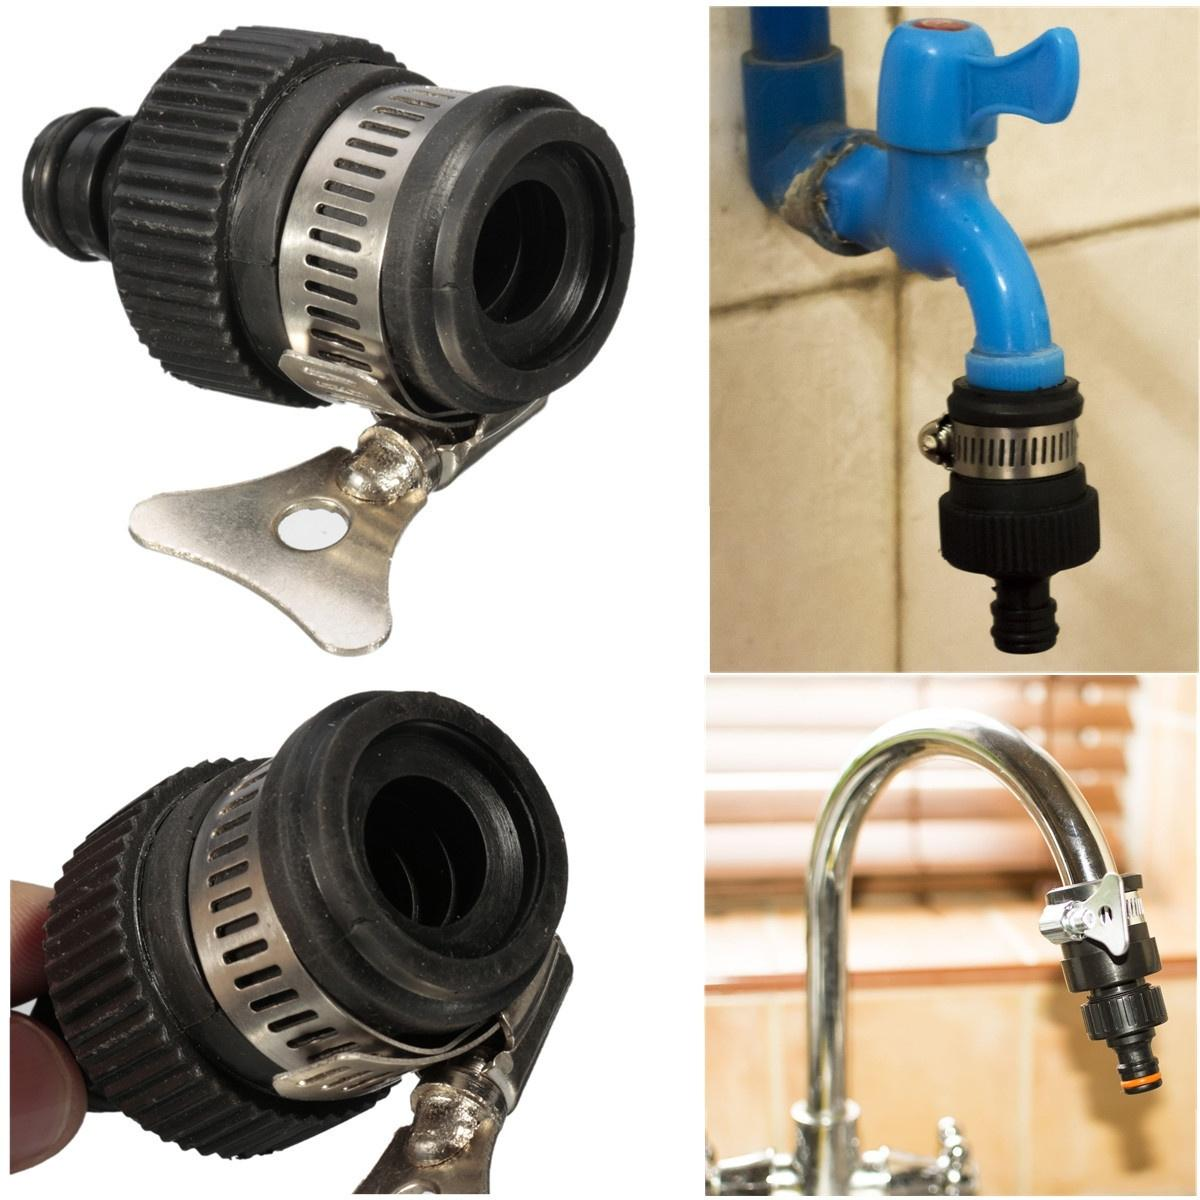 Universal 13-17mm Tap Connector Faucet Adapter Mixer Kitchen Garden Hose Pipe Fitting Nozzle